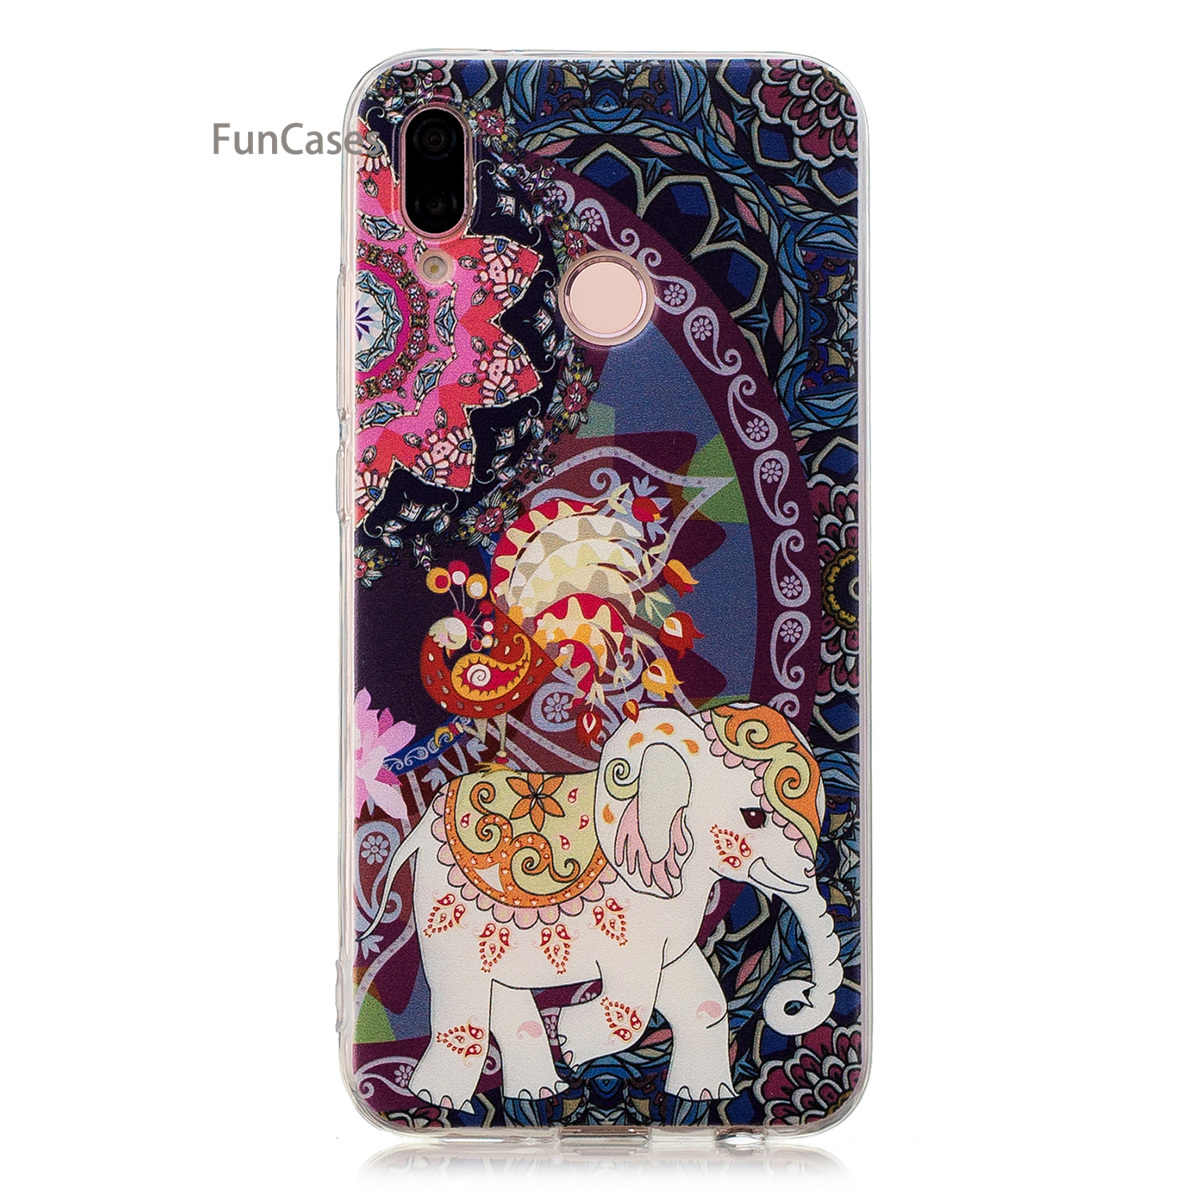 8fcbb405d97 ... Lovely Unicorn Phone Case sFor Carcasa Huawei P20 Lite Soft TPU Back  Cover Carcasas Squishy Flip ...